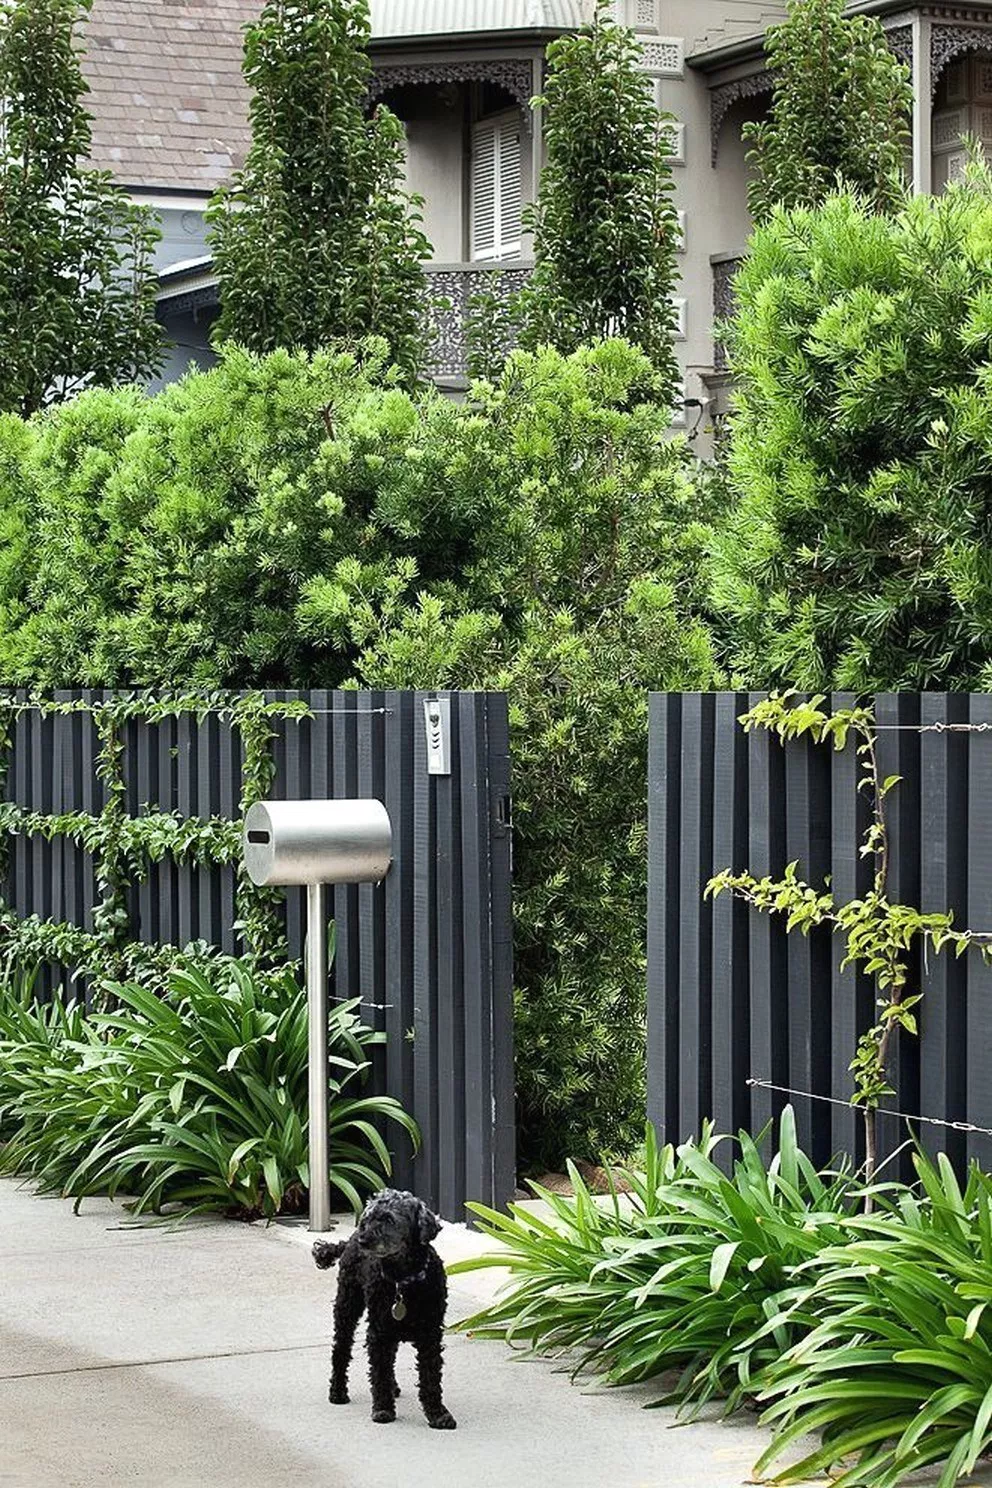 The Latest Landscaping Trend To Take Over Outdoor Pavers 62 Home Design Ideas Modern Fence Design Fence Design Front Yard Fence